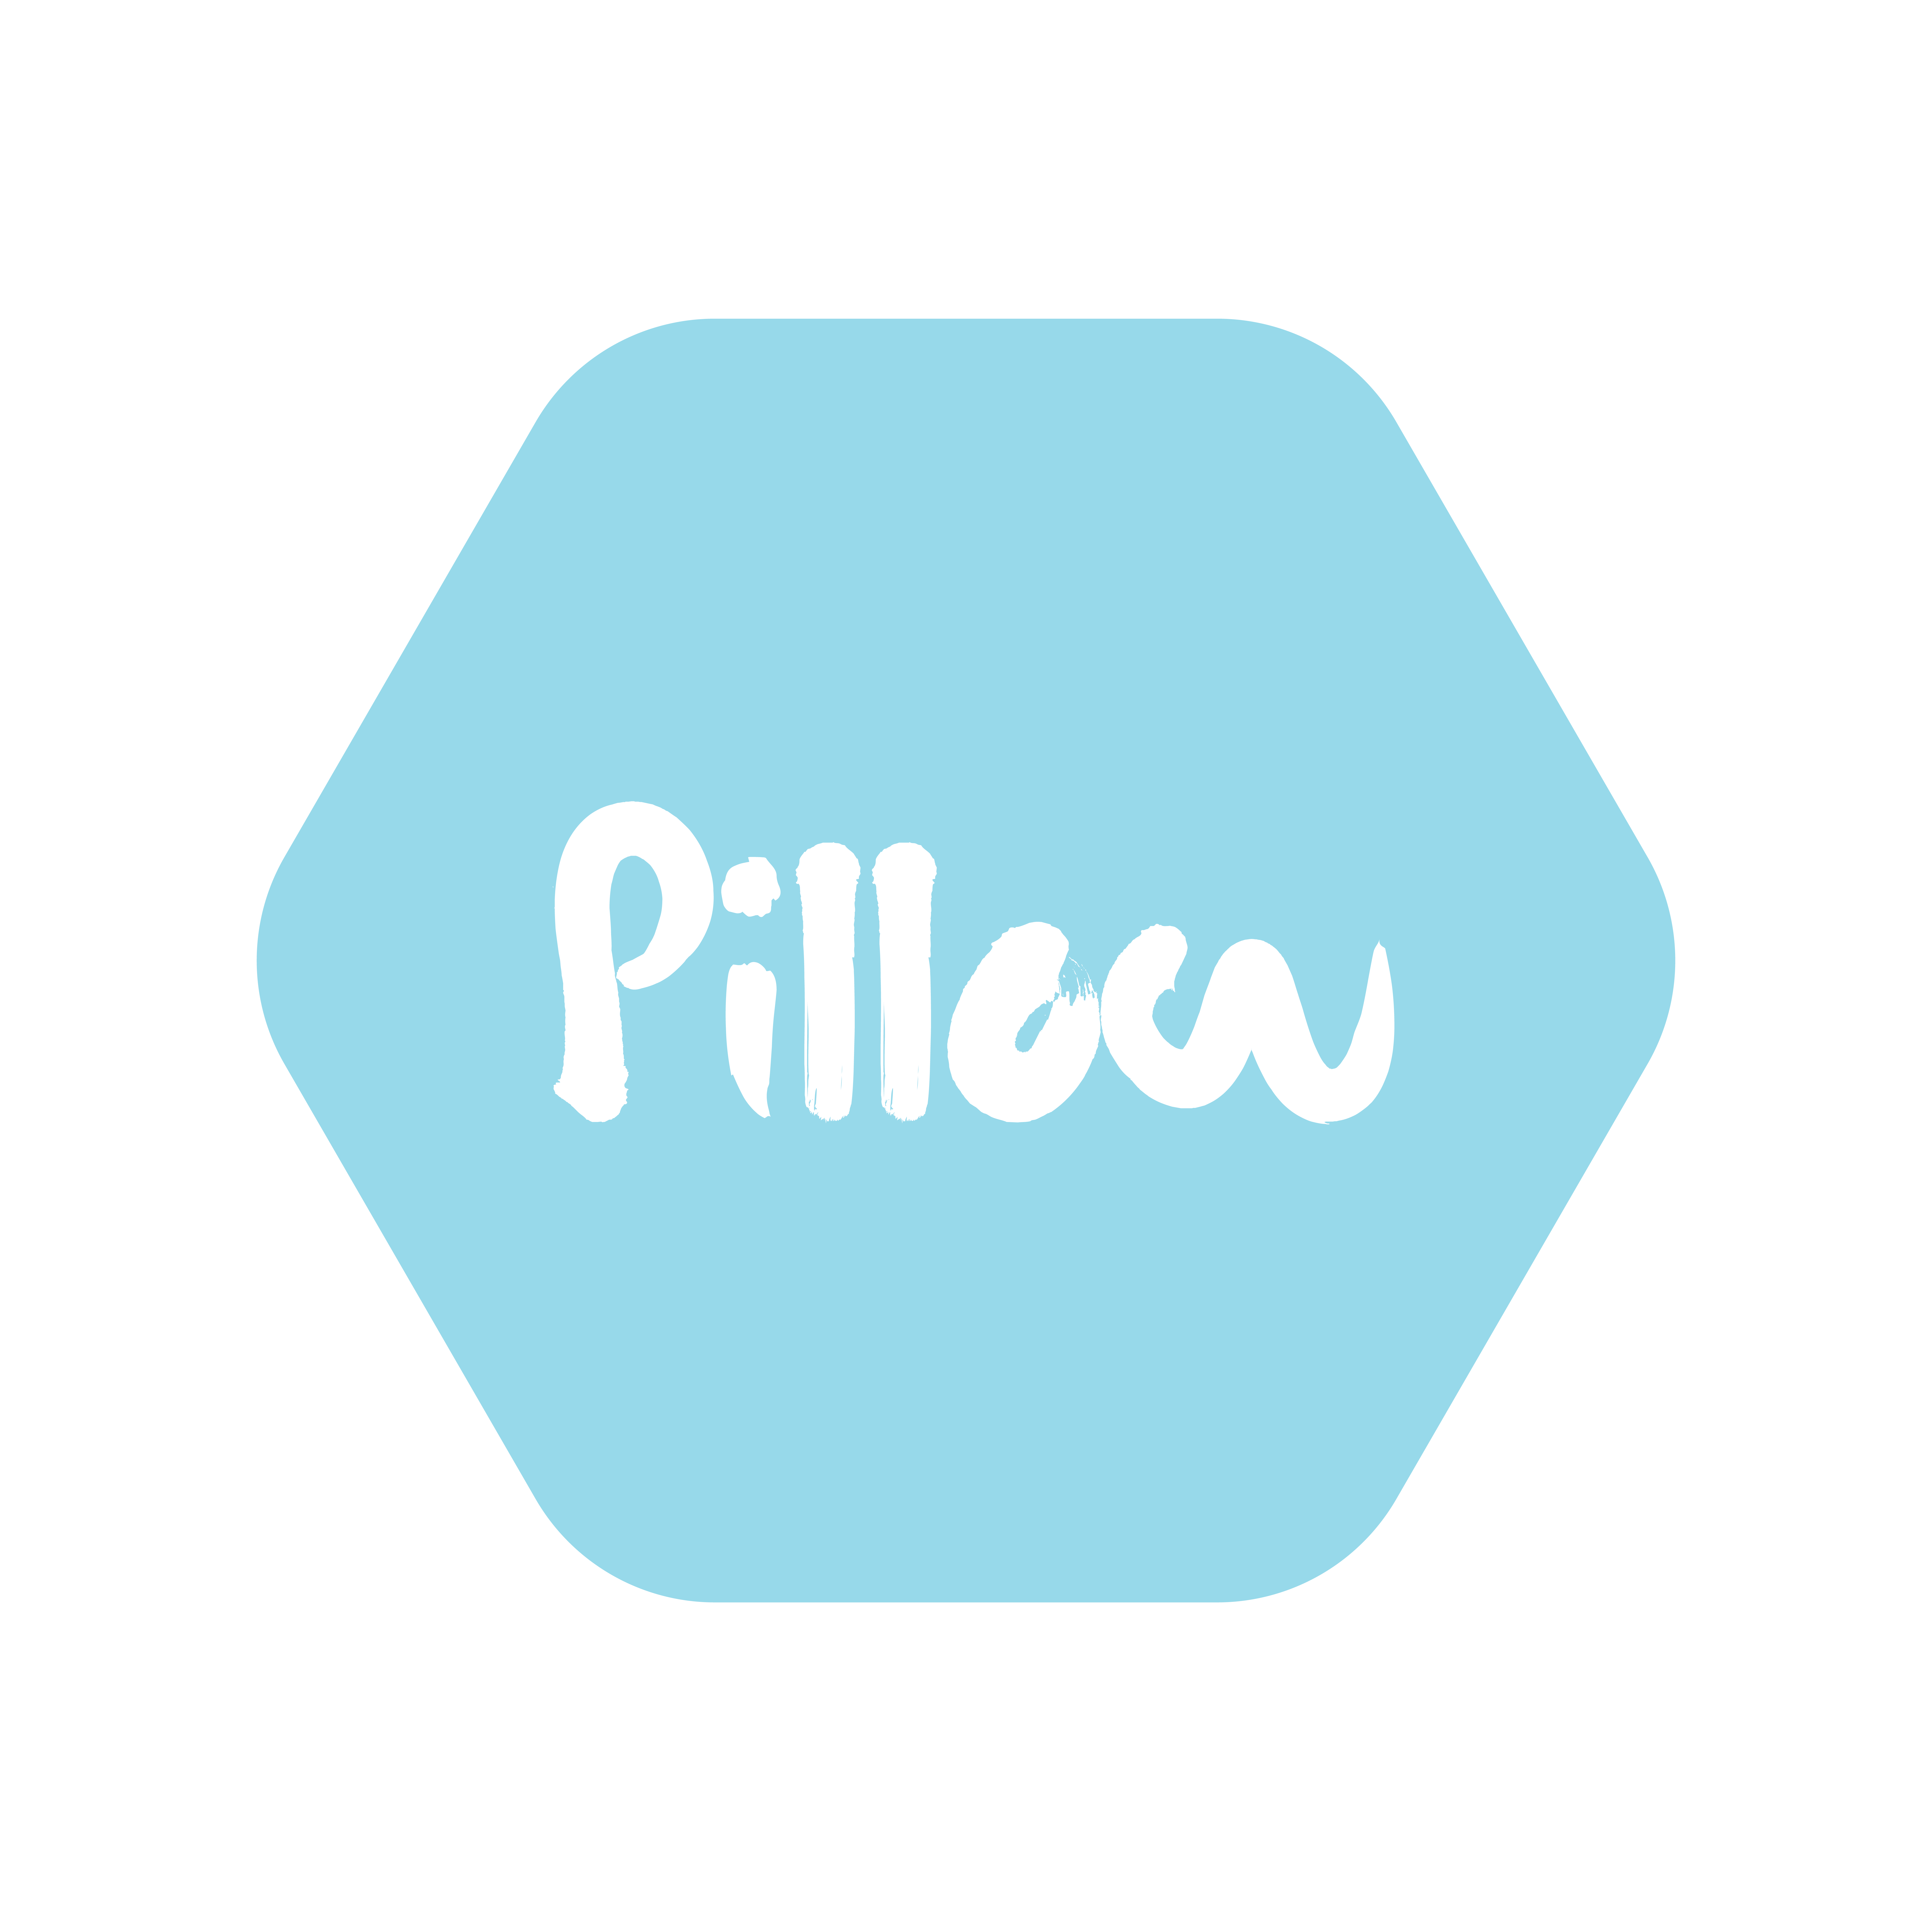 Pillow_newLogo_Vino_9-12-2019_V1-01 (1)